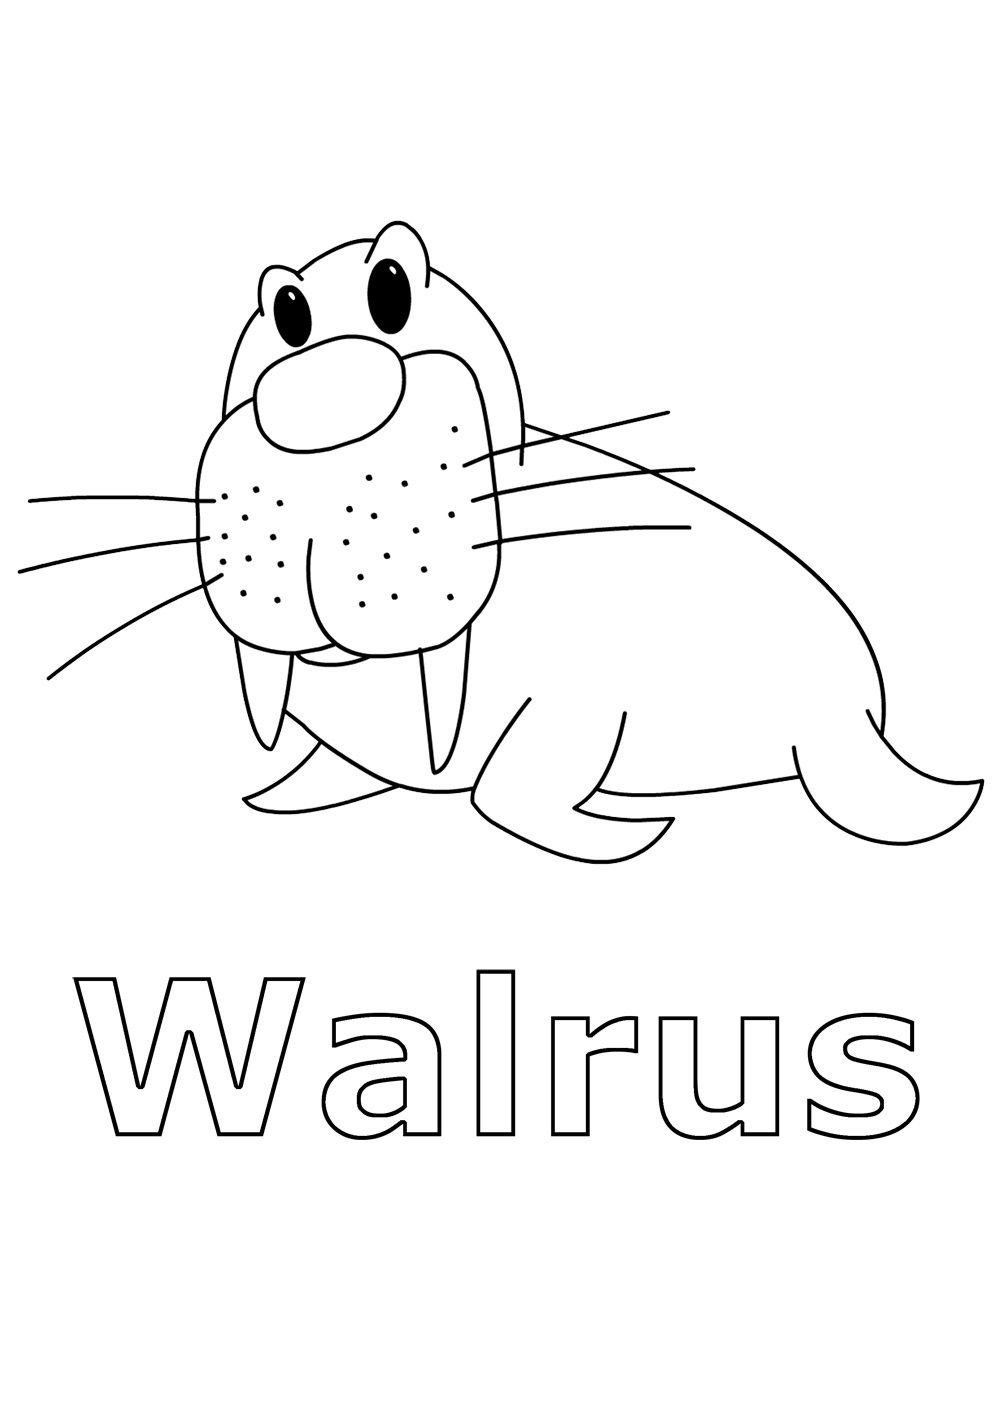 Free Printable Walrus Coloring Pages For Kids | animal coloring pages for toddlers